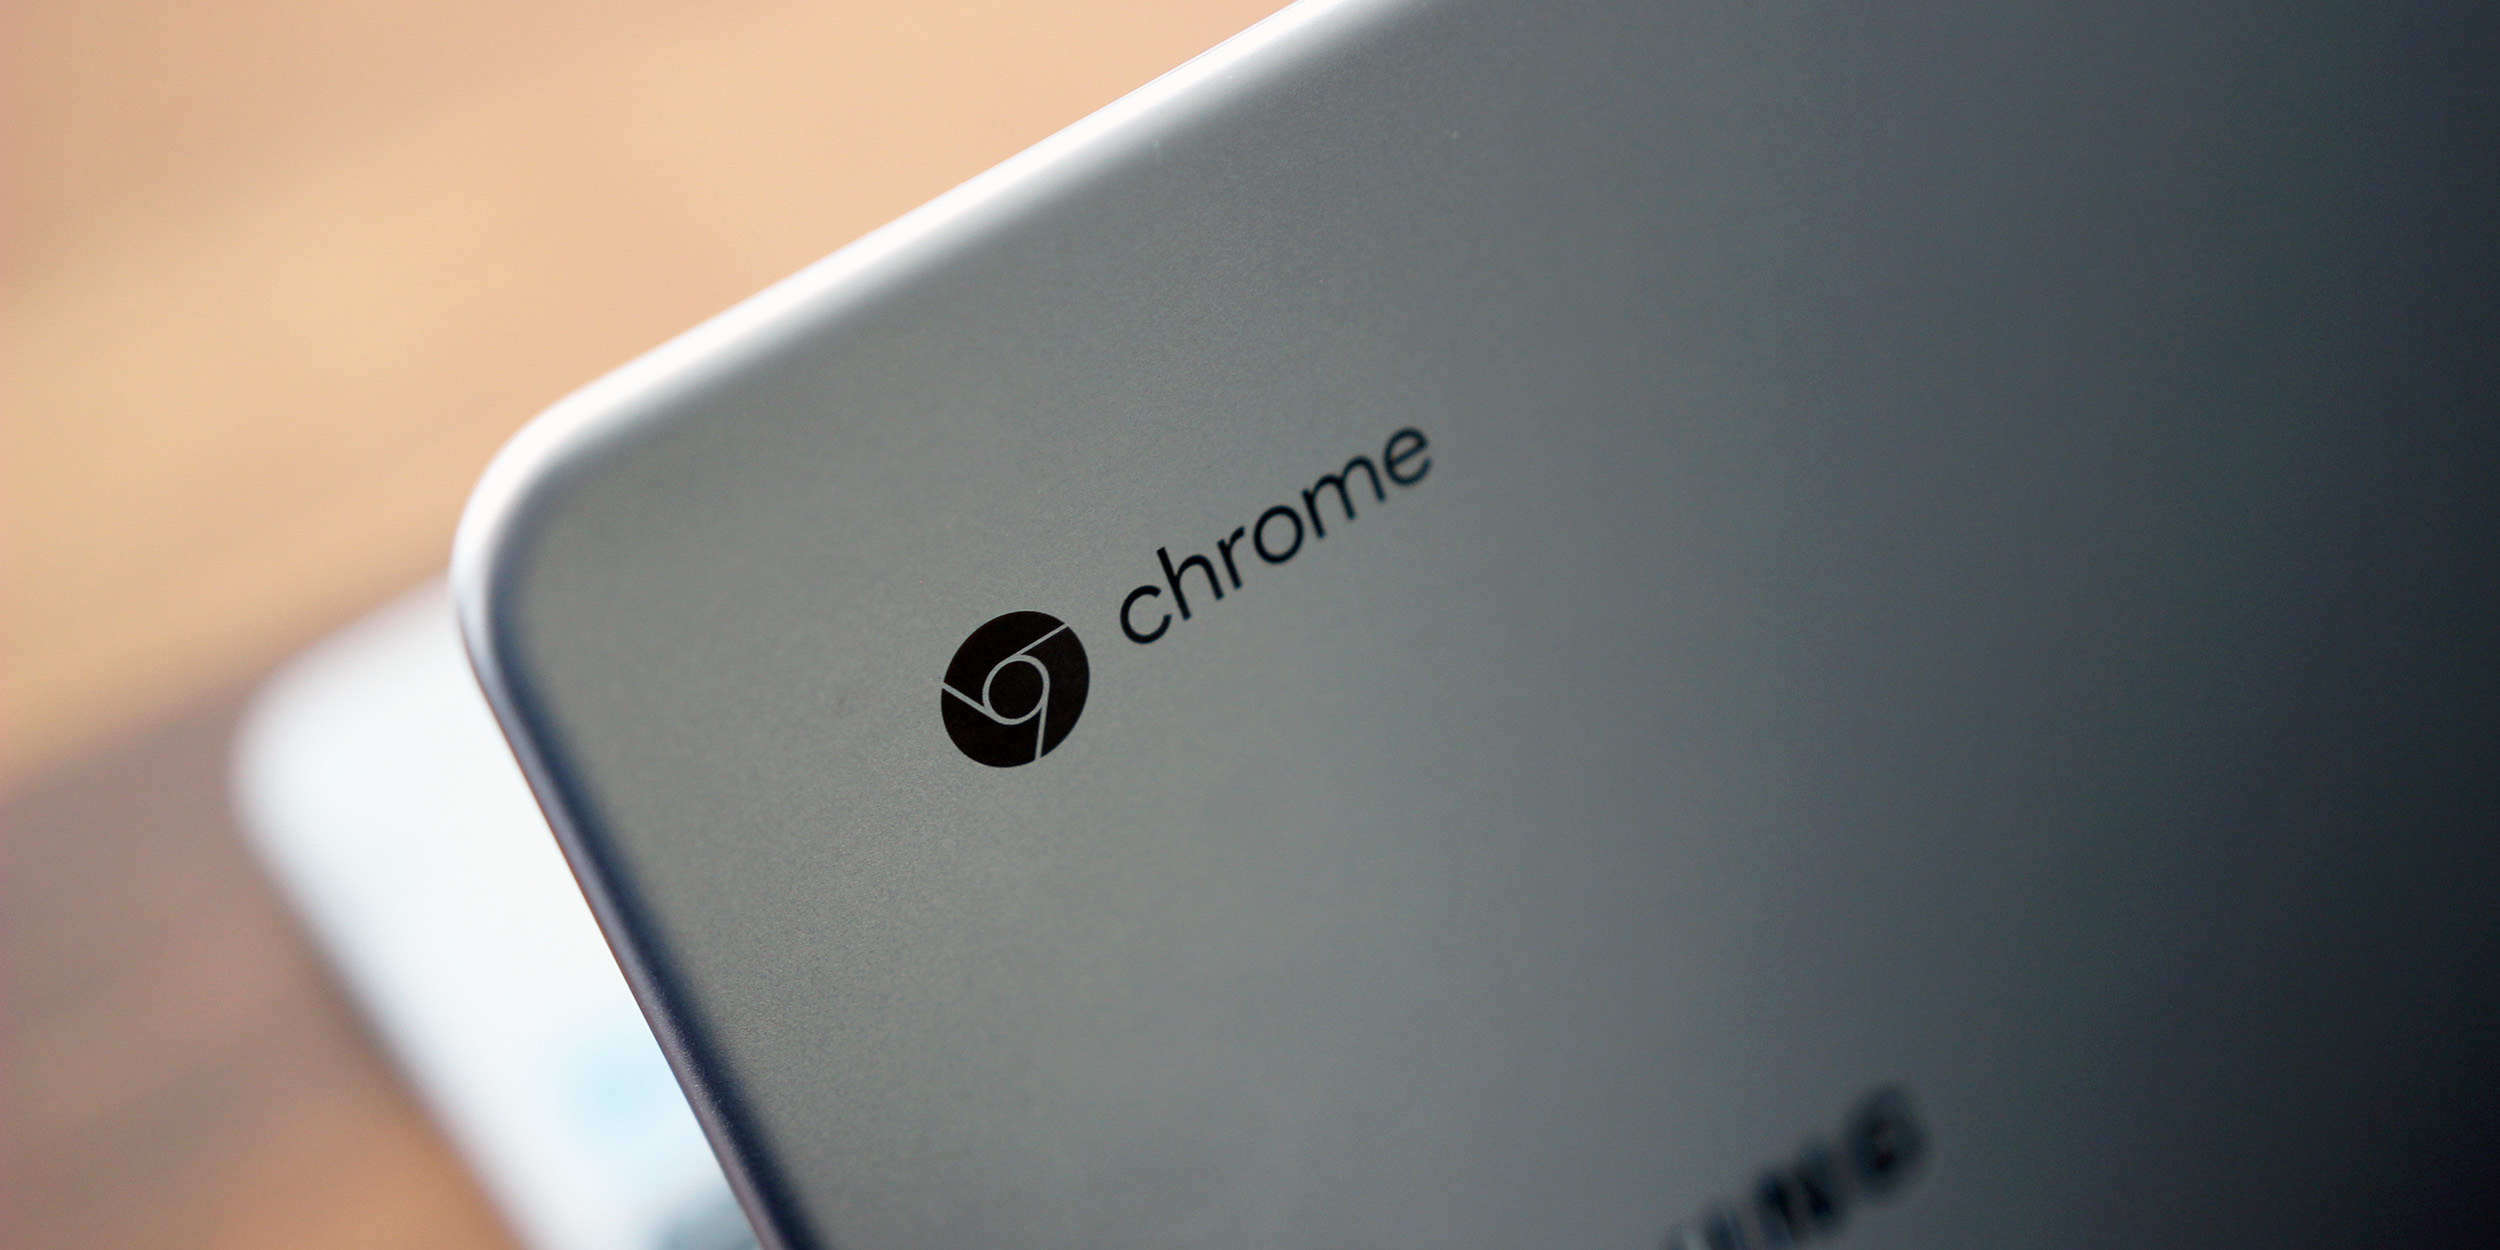 google chrome s new tab page backgrounds will integrate with google photos